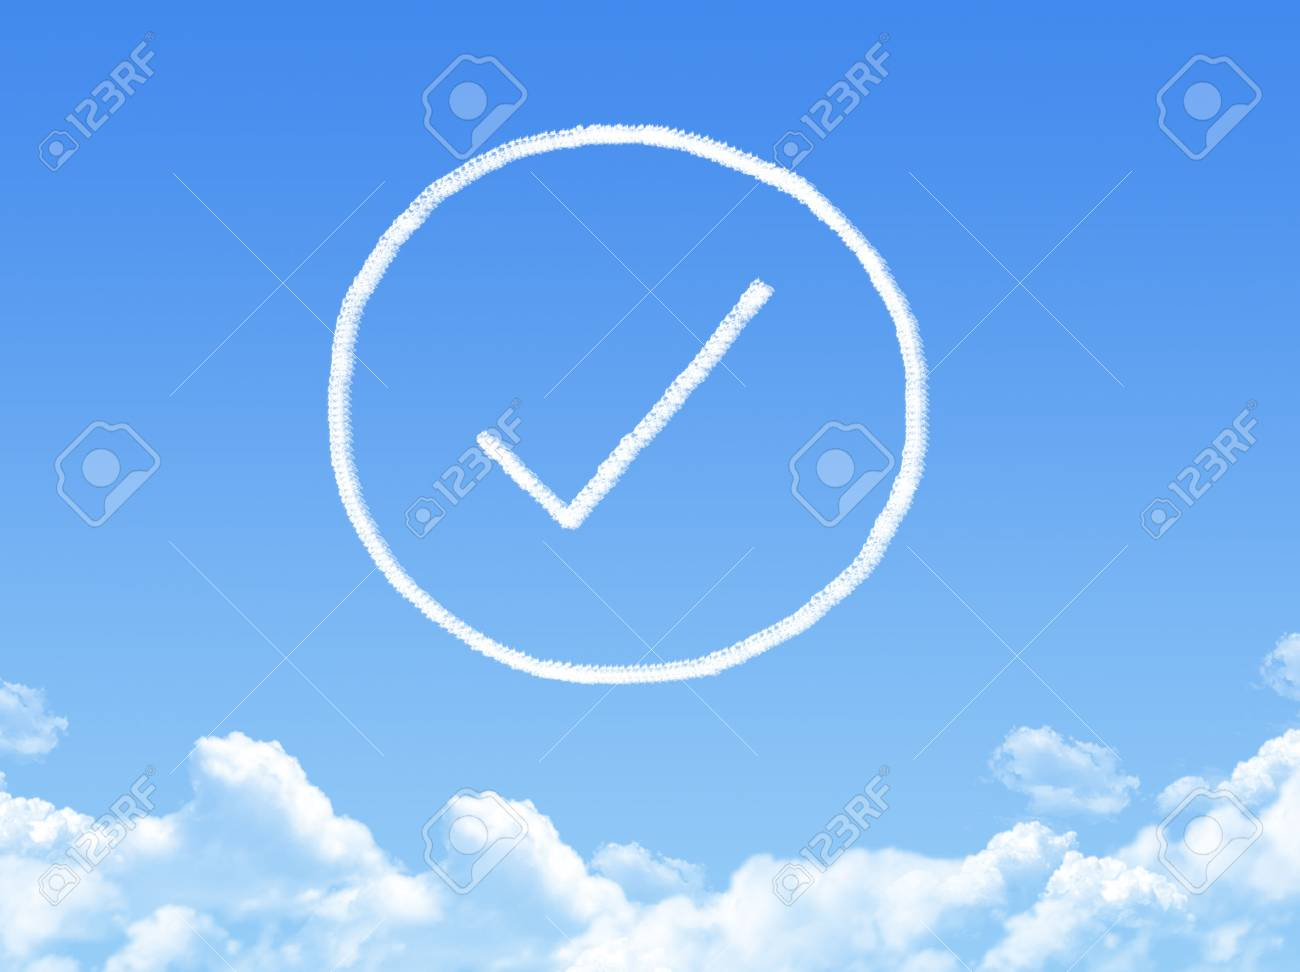 Approved cloud shape Stock Photo - 26339163